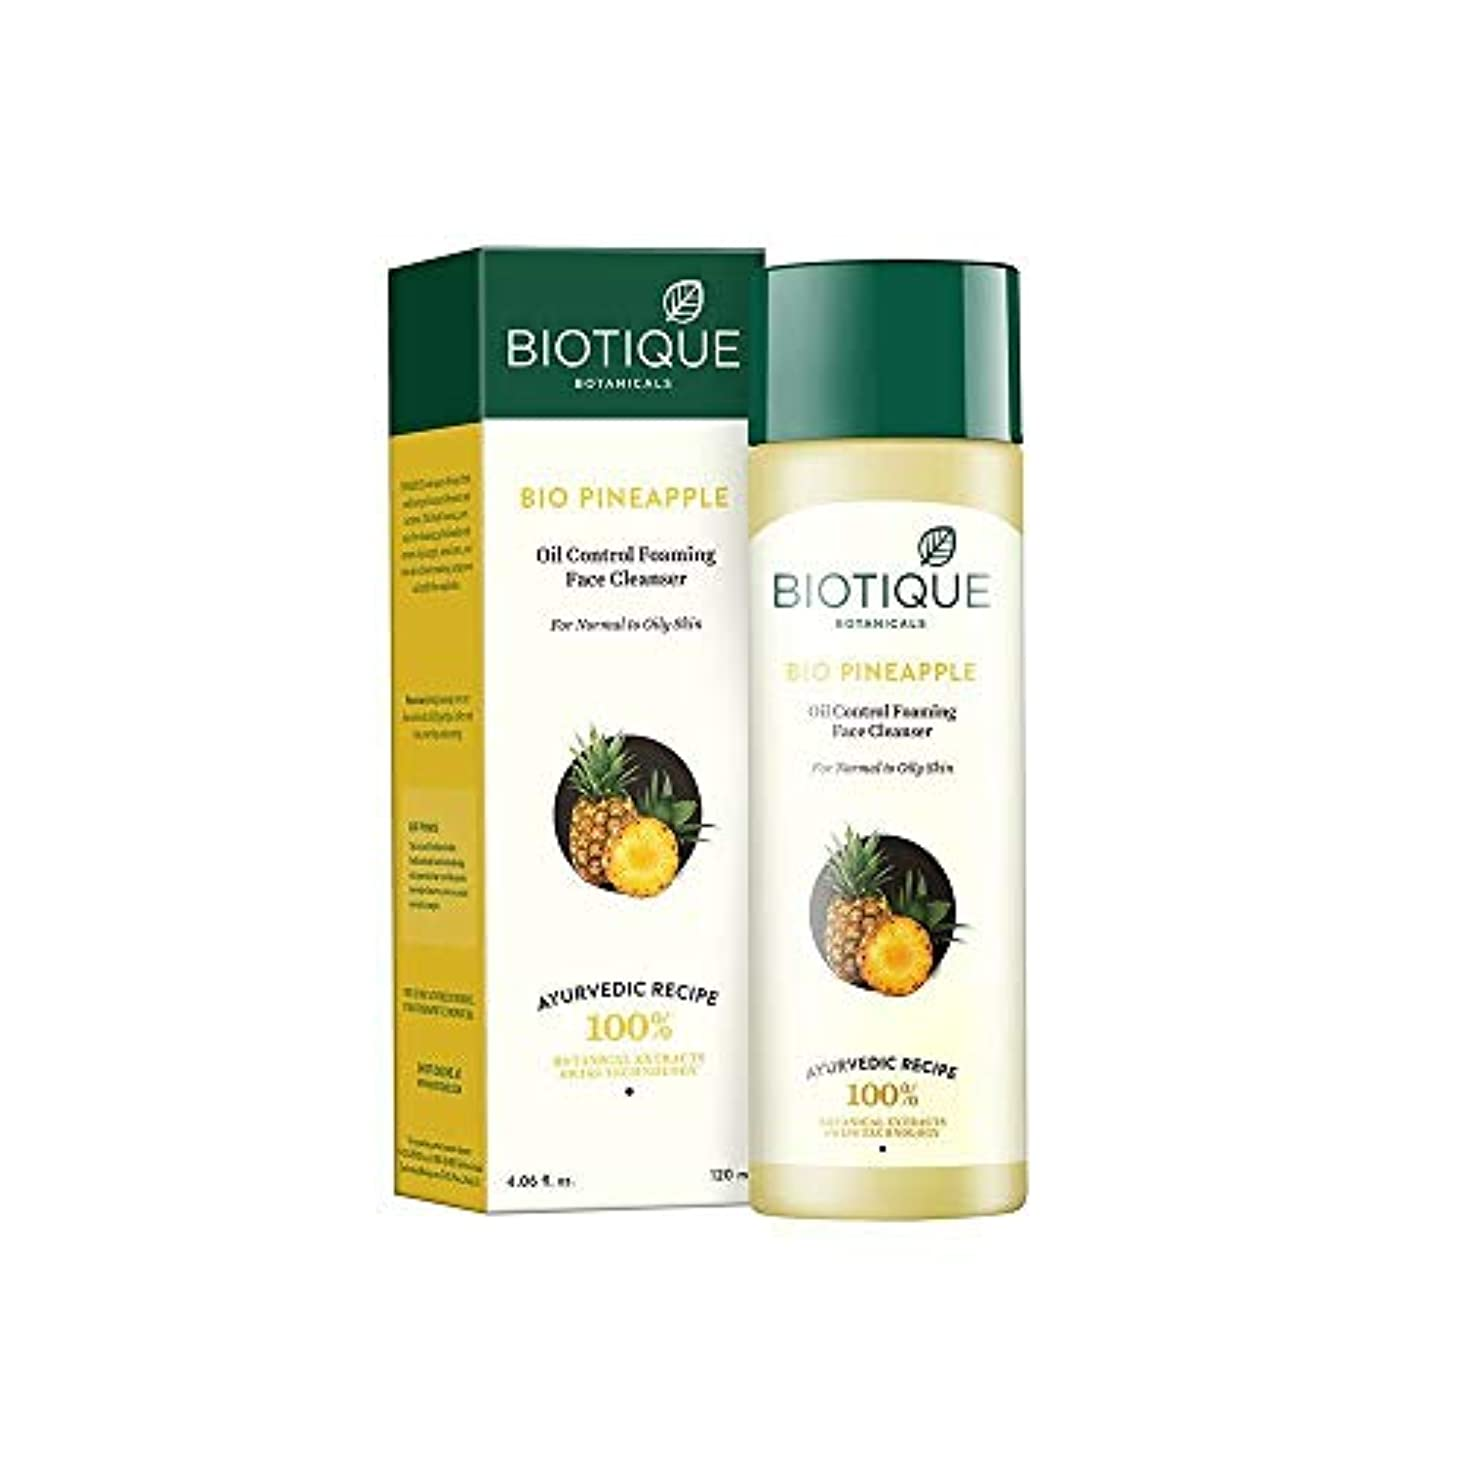 Biotique Pineapple Fresh Foaming Cleansing Gel for Normal to Oily Skin, 120ml